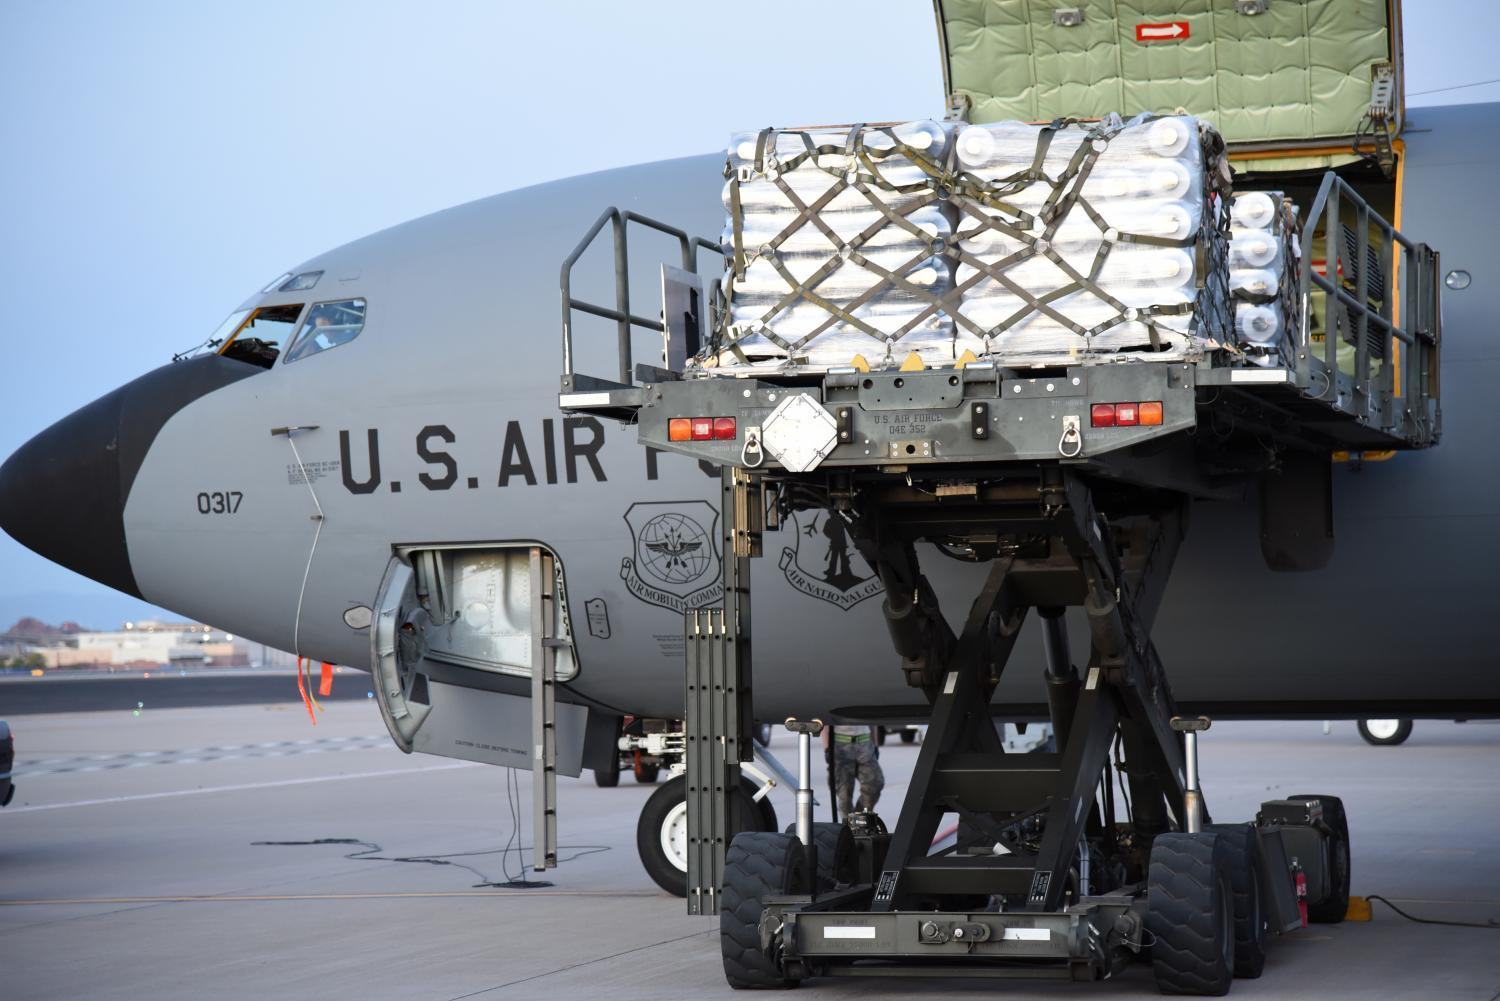 Unloading PPE from an Arizona Air National Guard tanker.